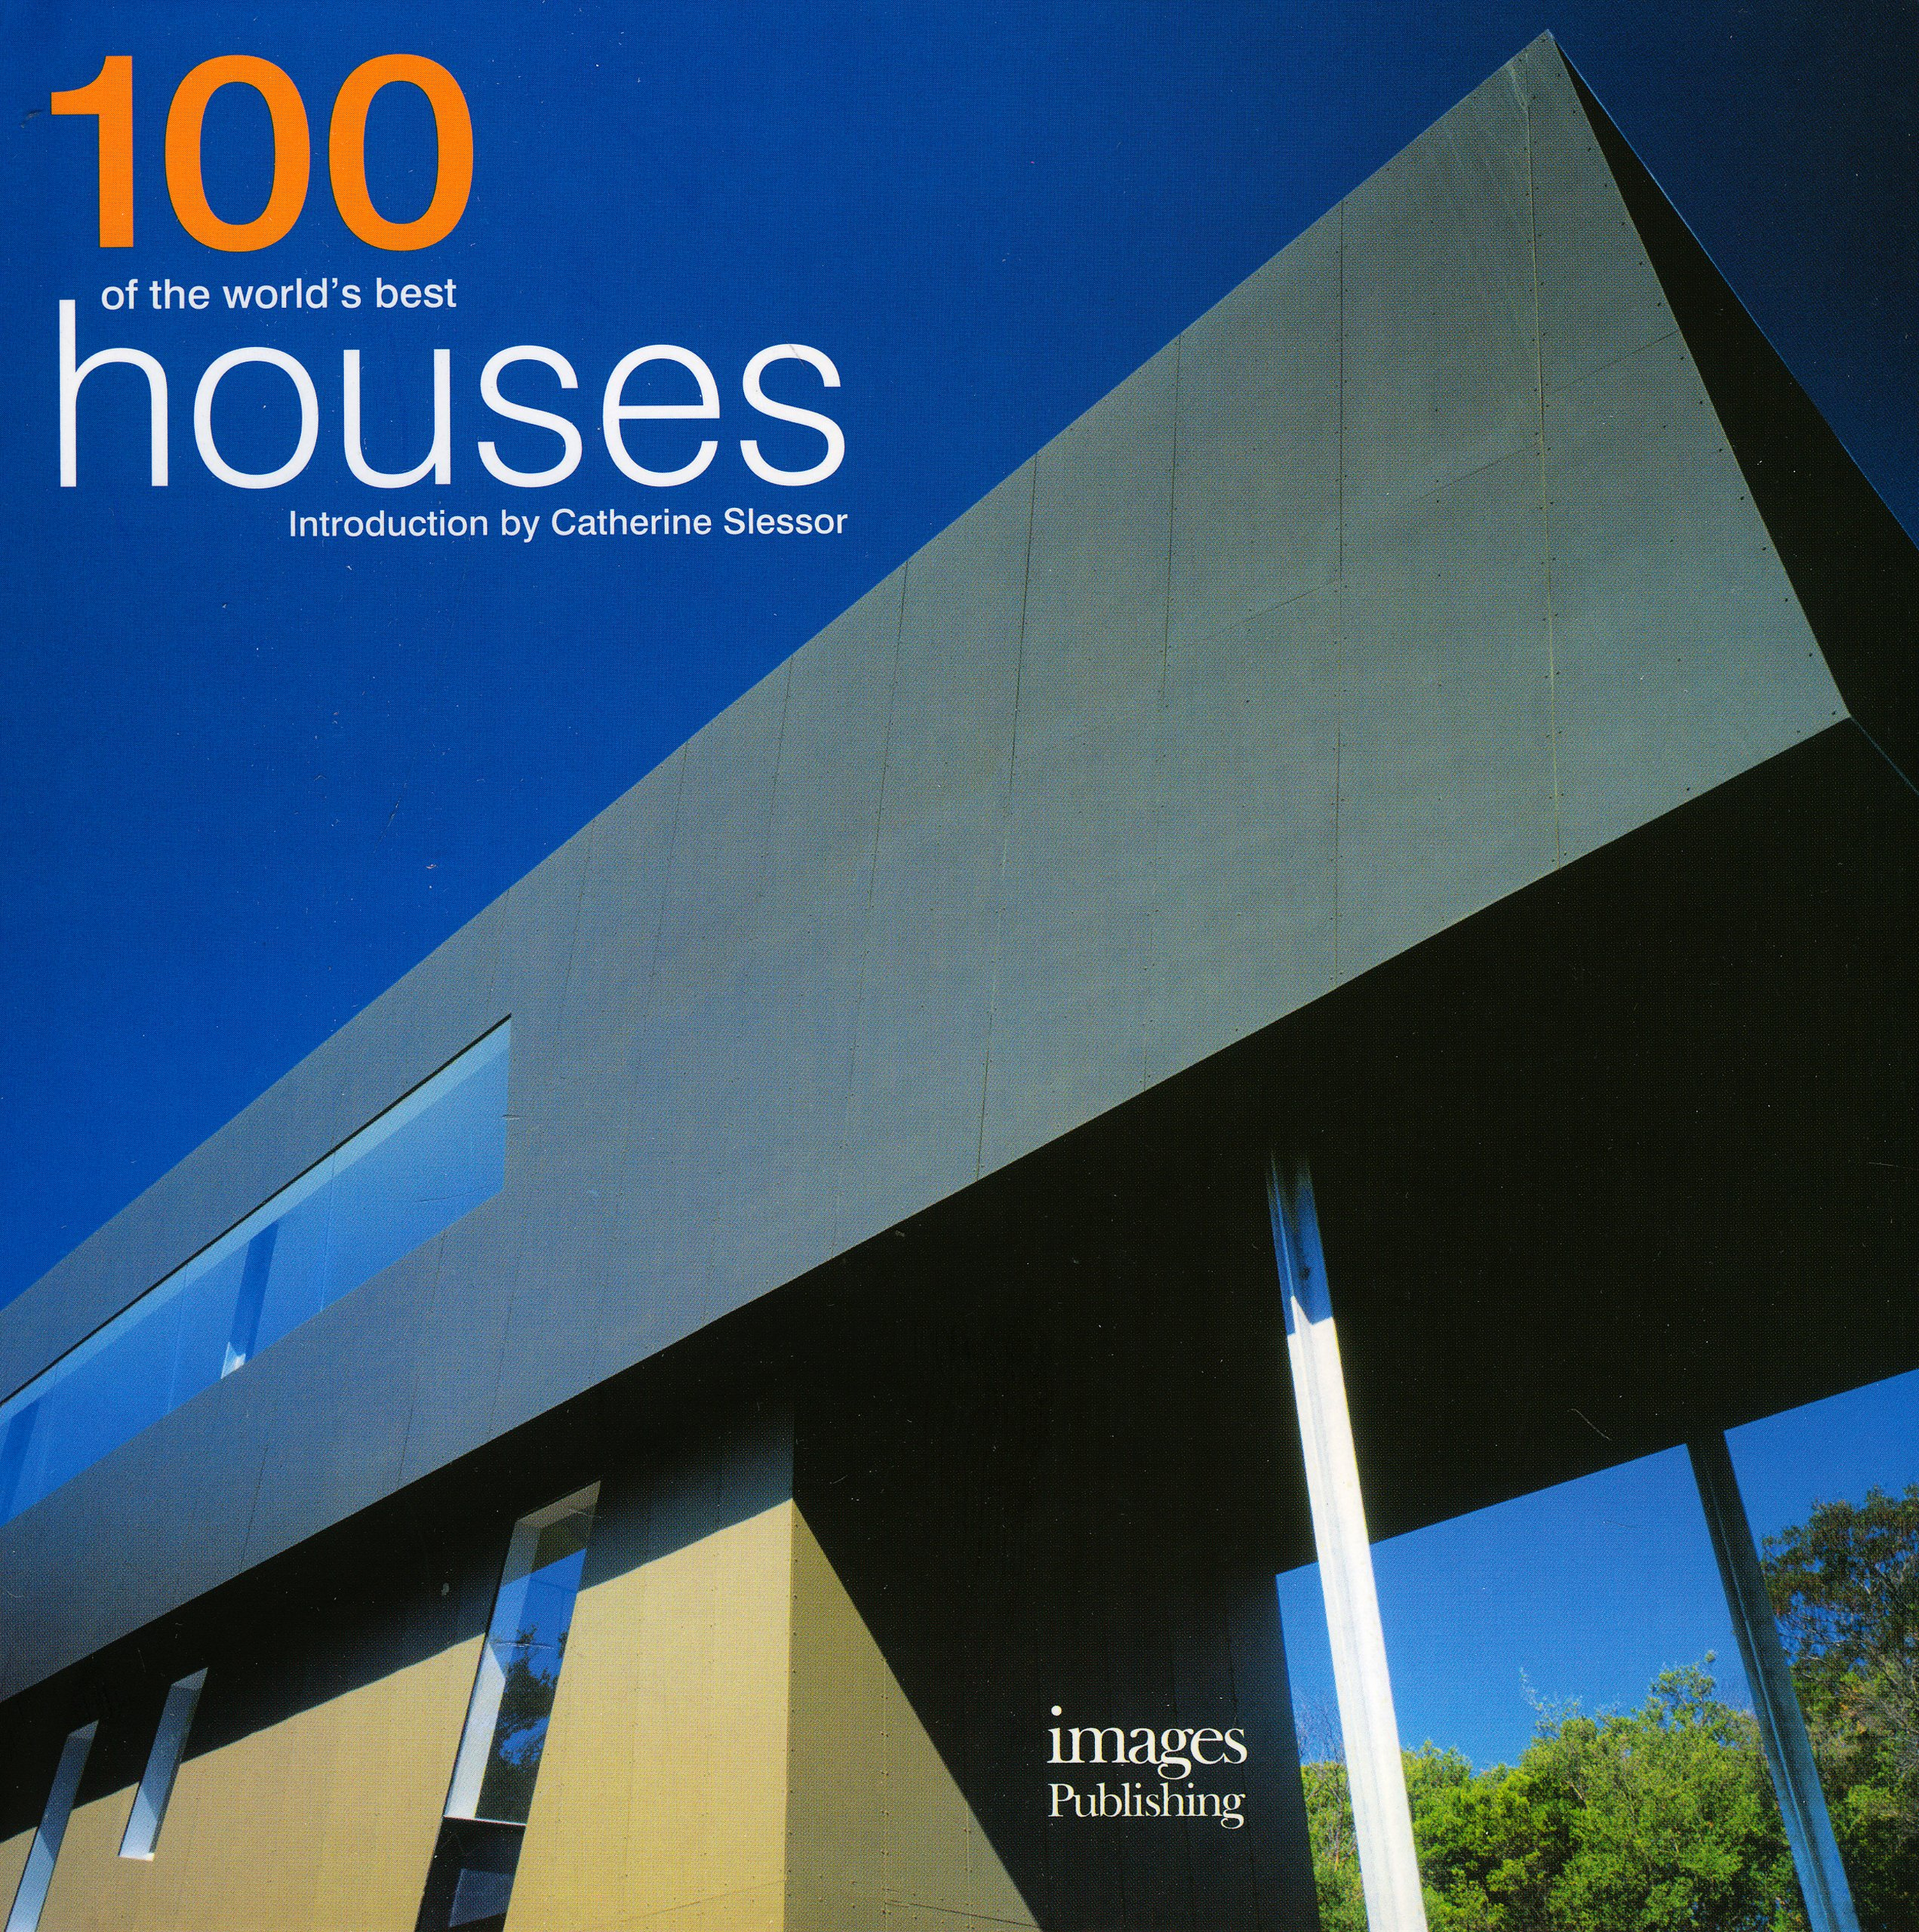 100 of the worlds best houses catherine slessor 9781864704358 amazon com books